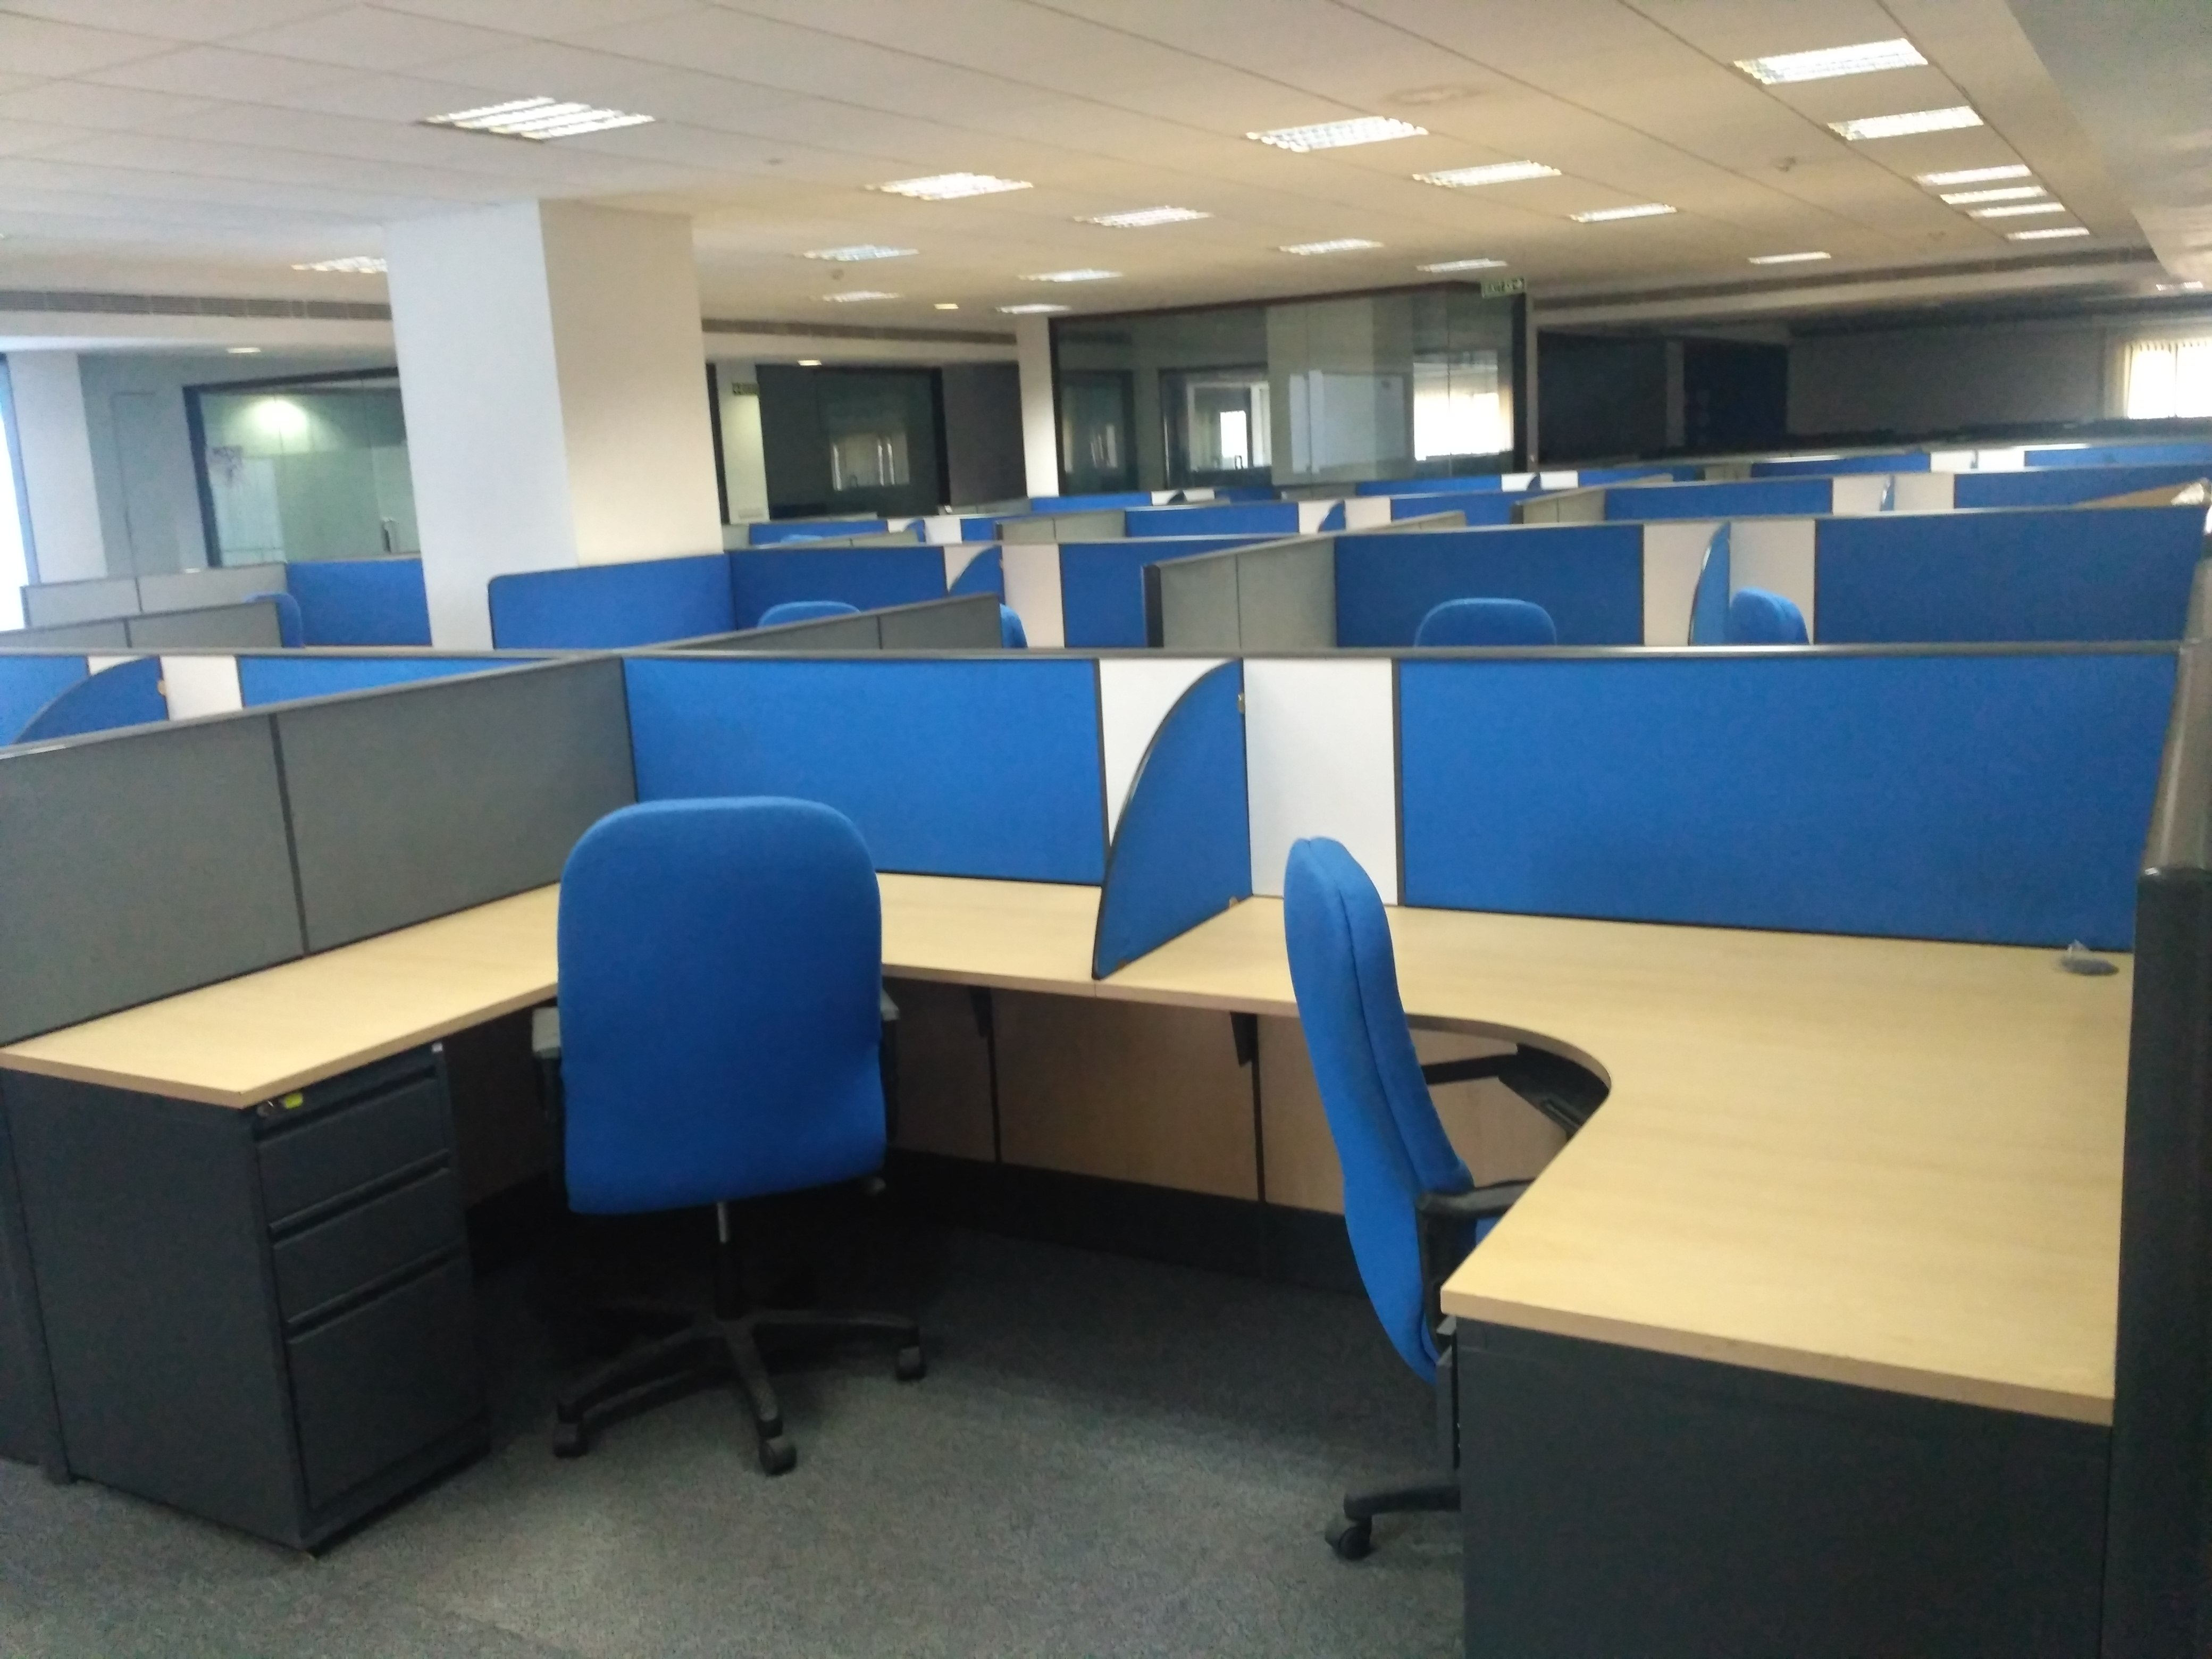 Office for rent in perungudi chennai (1)